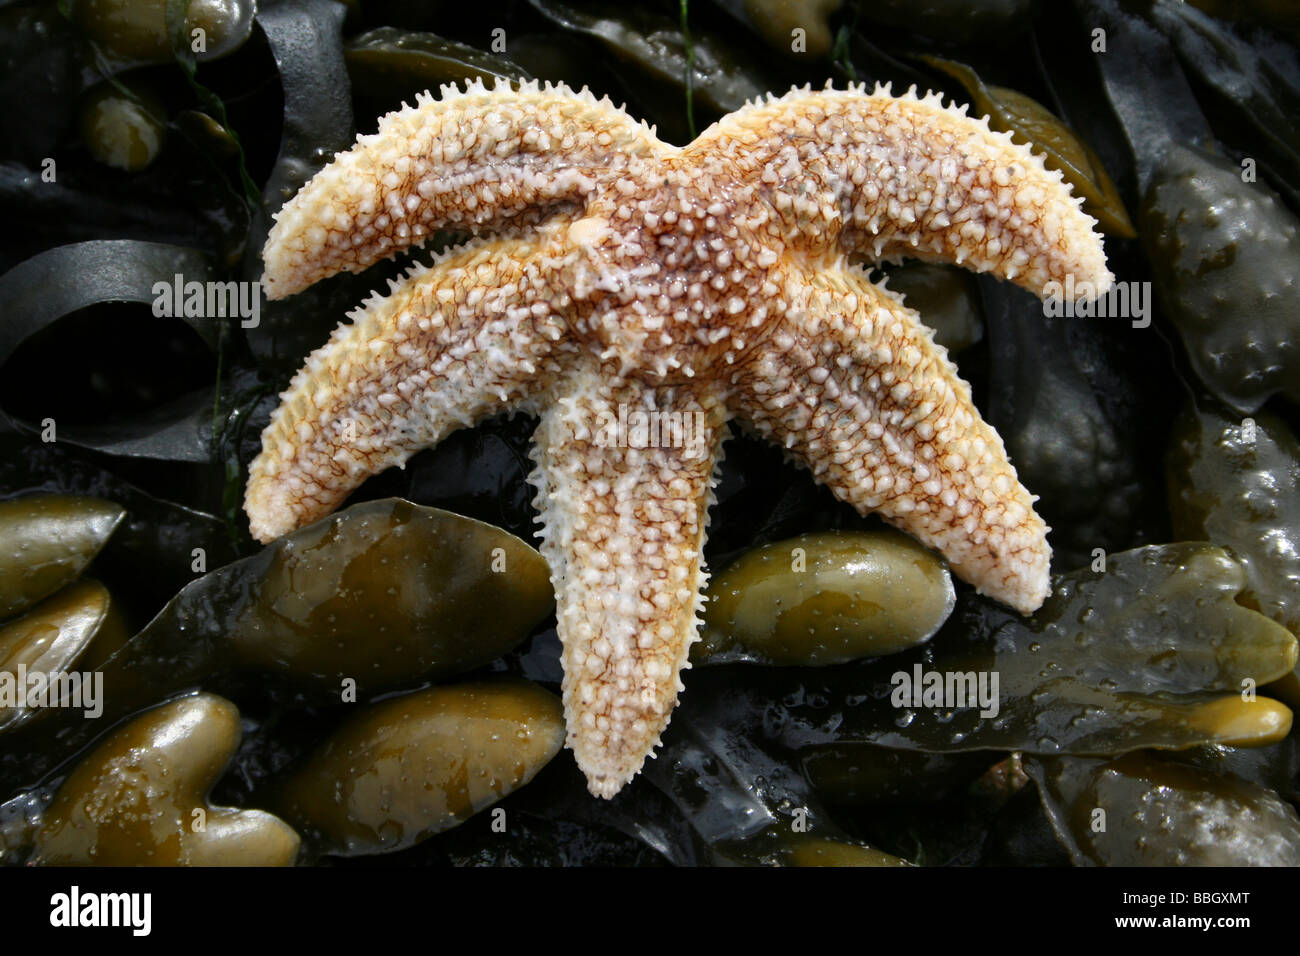 Common Starfish Asterias rubens On A Spiral Wrack Fucus spiralis Covered Rock At New Brighton, The Wirral, Merseyside, Stock Photo